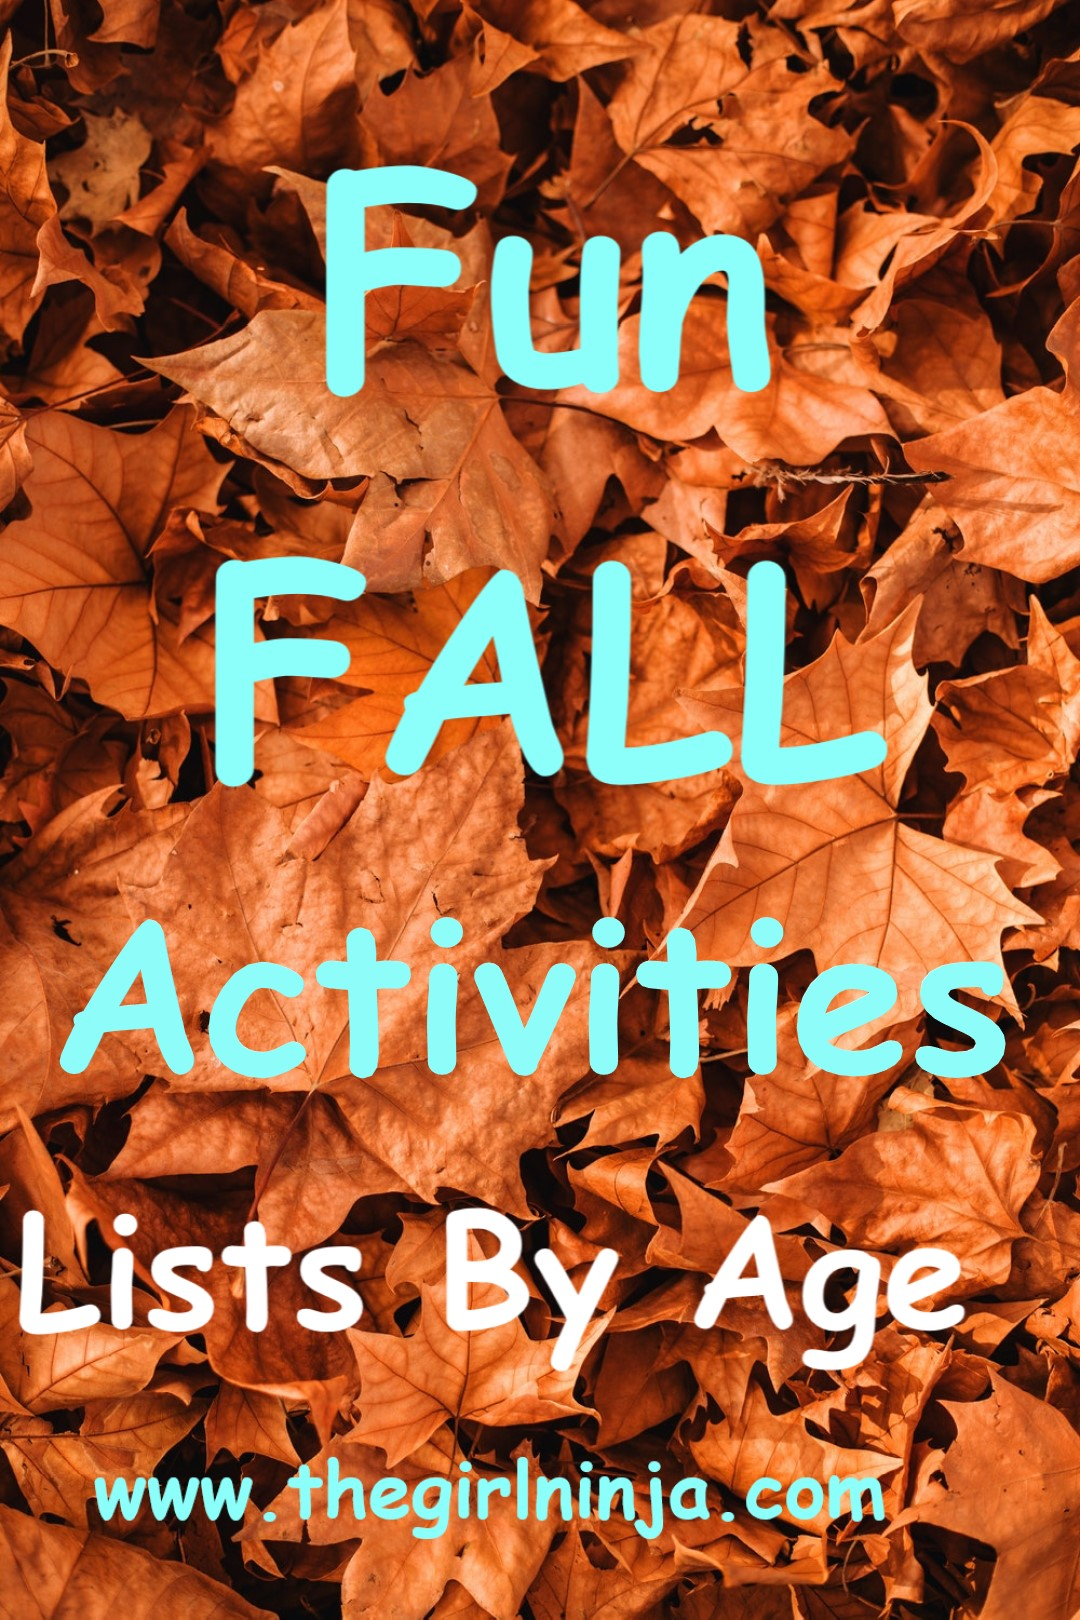 Orange and brown leaves piled atop each other. Sky blue text over the leaves read Fun FALL Activities Lists By Age. At bottom center blue text reads www.thegirlninja.com